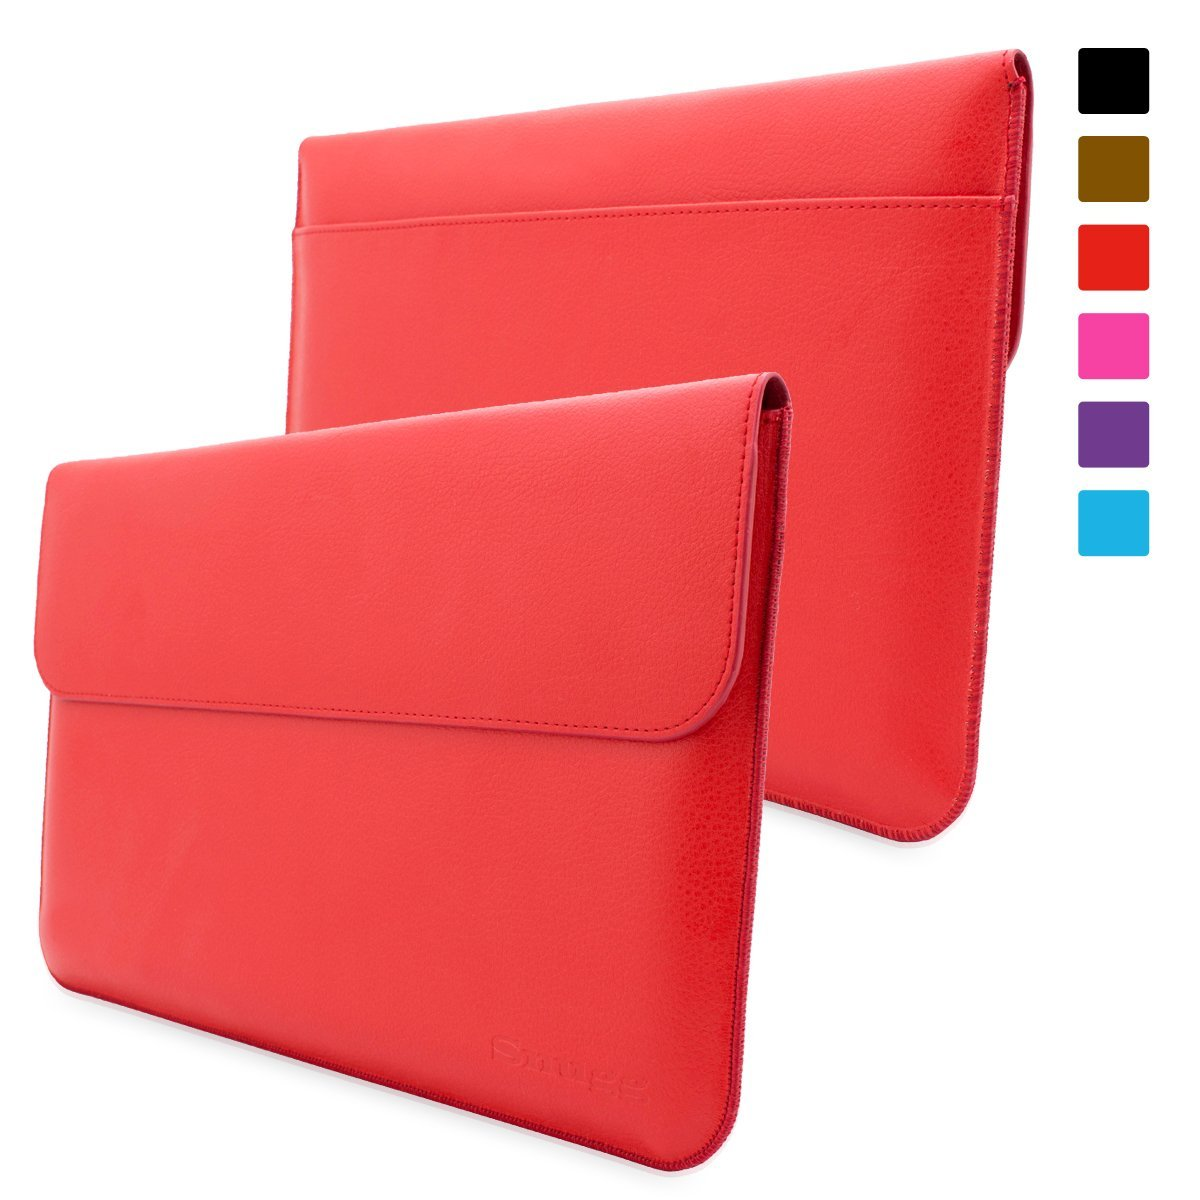 Top 10 microsoft surface pro 3 cases covers best microsoft surface pro - Best Microsoft Surface Pro 4 Cases Covers Top Surface Pro 4 Case Cover6